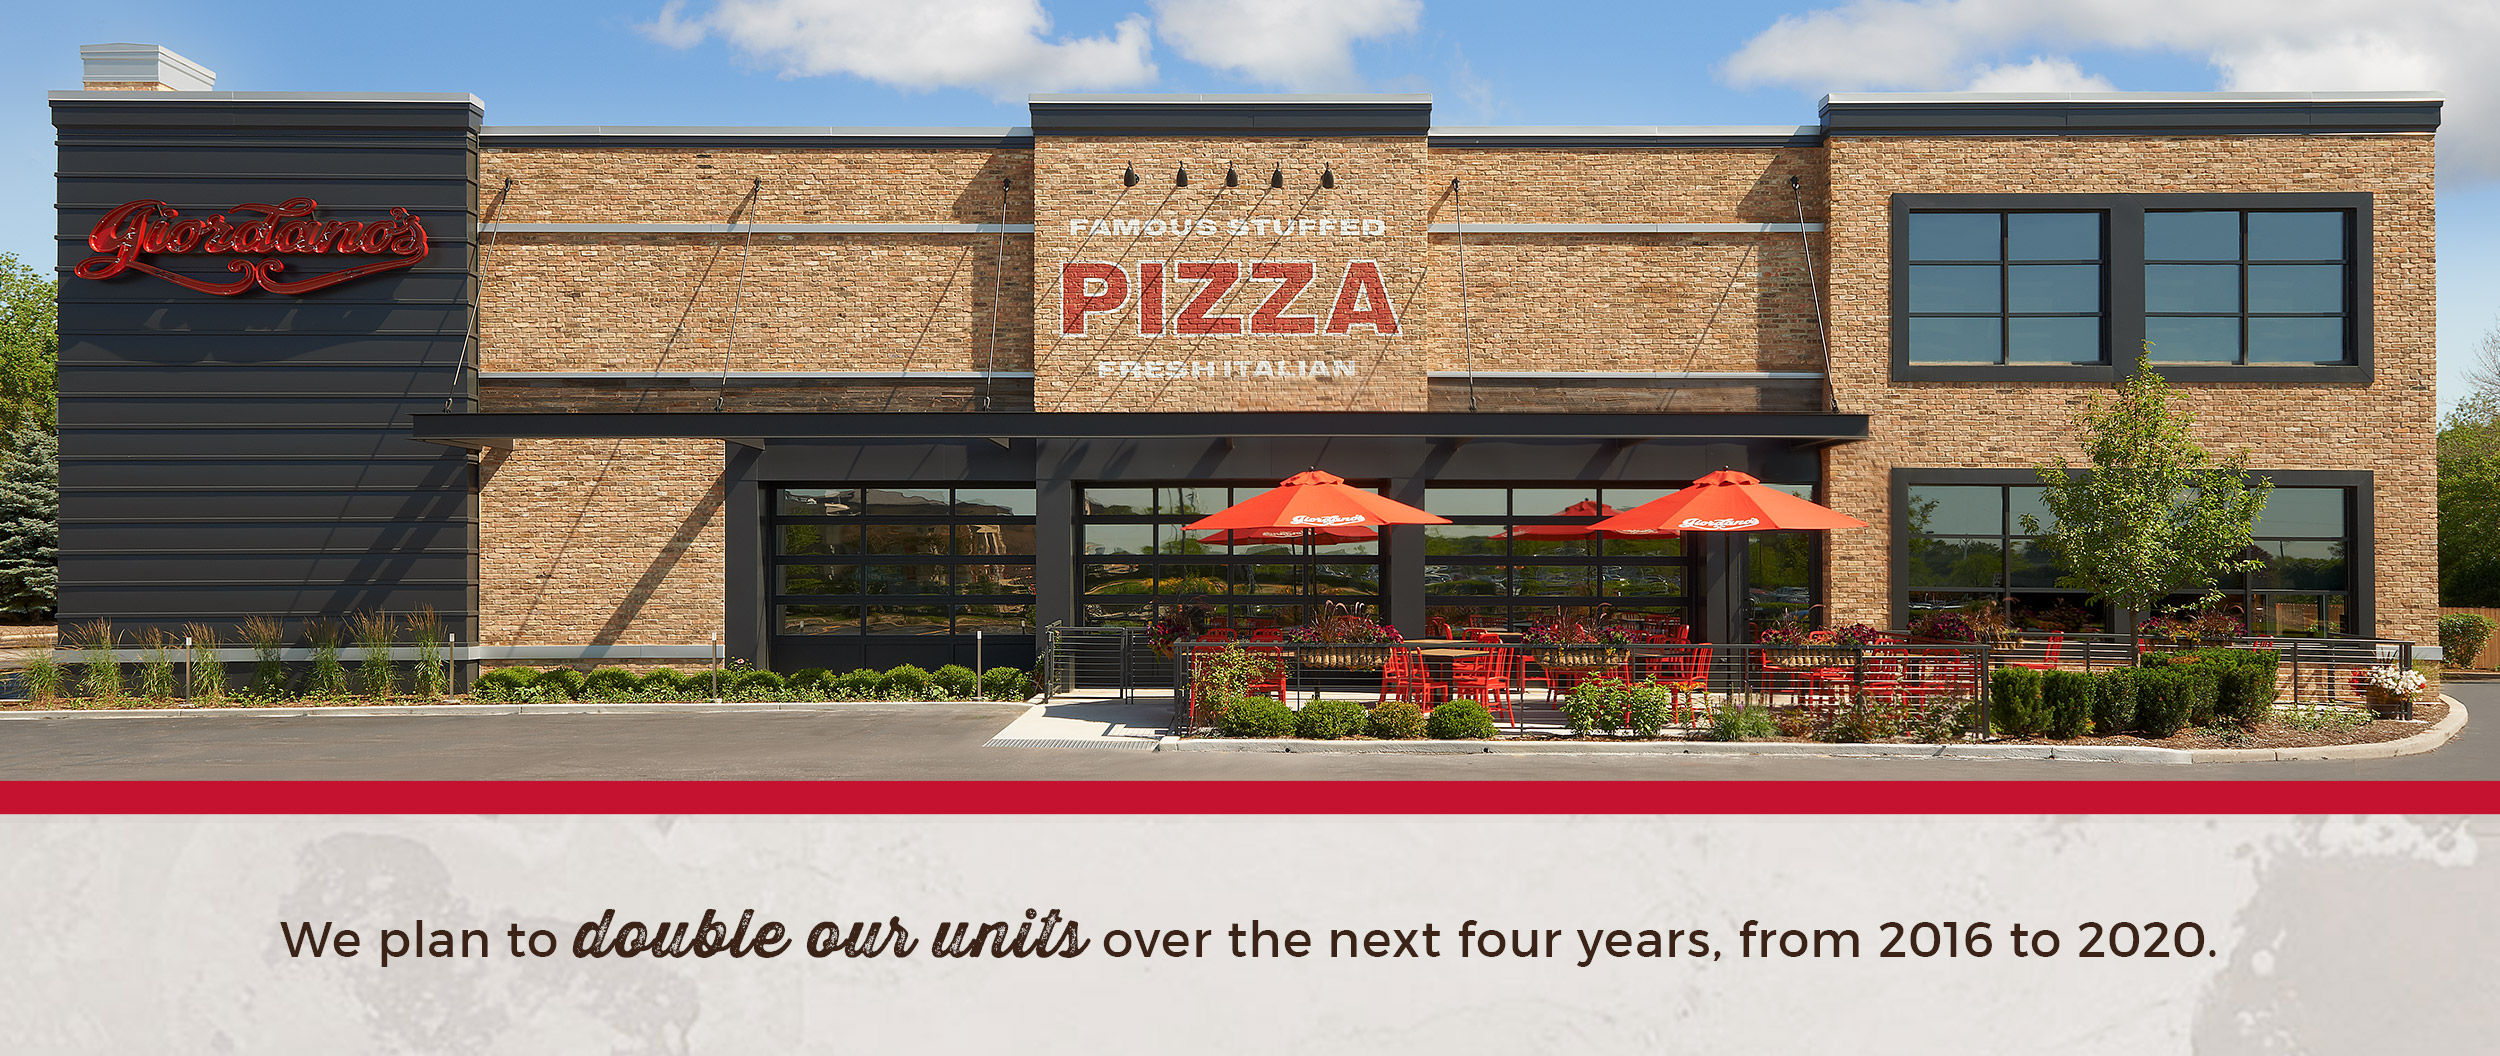 in 2016 we will open seven to 10 new franchise units and seven to 10 new company units in multiple markets we are targeting the following areas for - Olive Garden Francise